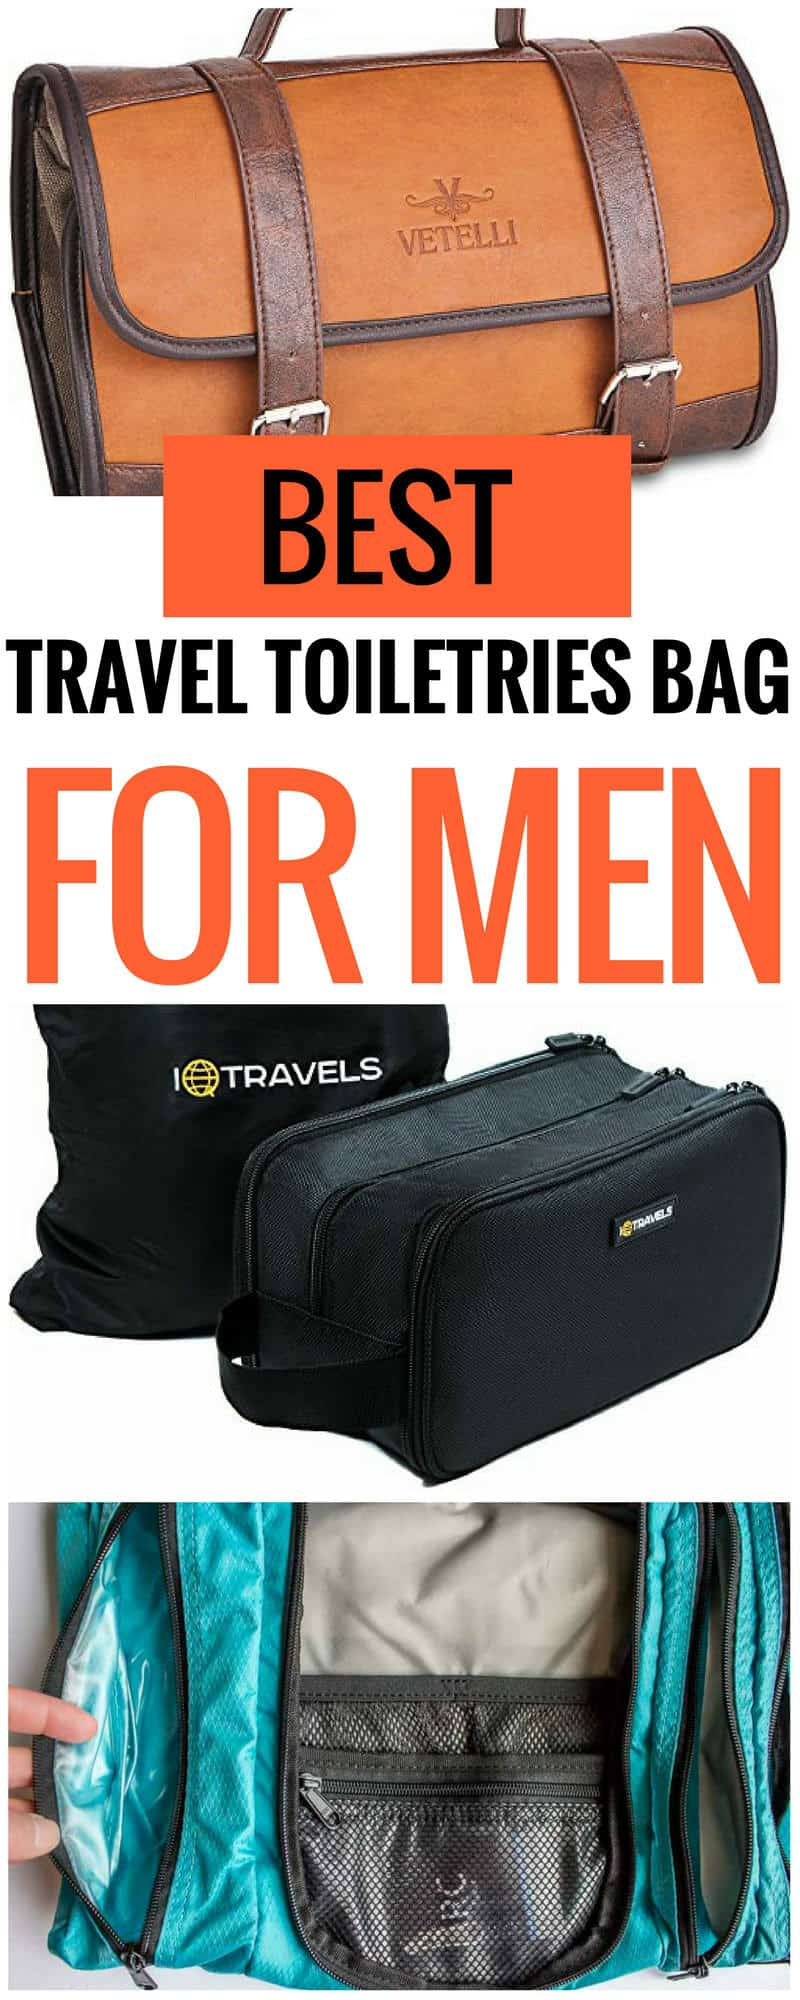 best travel toiletries bag for men. If you're traveling with a full shaving kit, or you're on a lightweight backpacking adventure, we've found the best toiletry kit for you. | travel toiletries bag | best travel toiletries bag | travel toiletries bag for men | best travel cosmetics case | travel cosmetics bag | cute toiletries bag | large toiletires bag | small travel toiletries bag | hanging toiletries bag | travel toiletries Dopp kit | travel toiletries bag Christmas gift | toiletries bag for trips or vacation | cute toiltries bag | clear toiletries bag #travel #traveltips #packingtips #packing